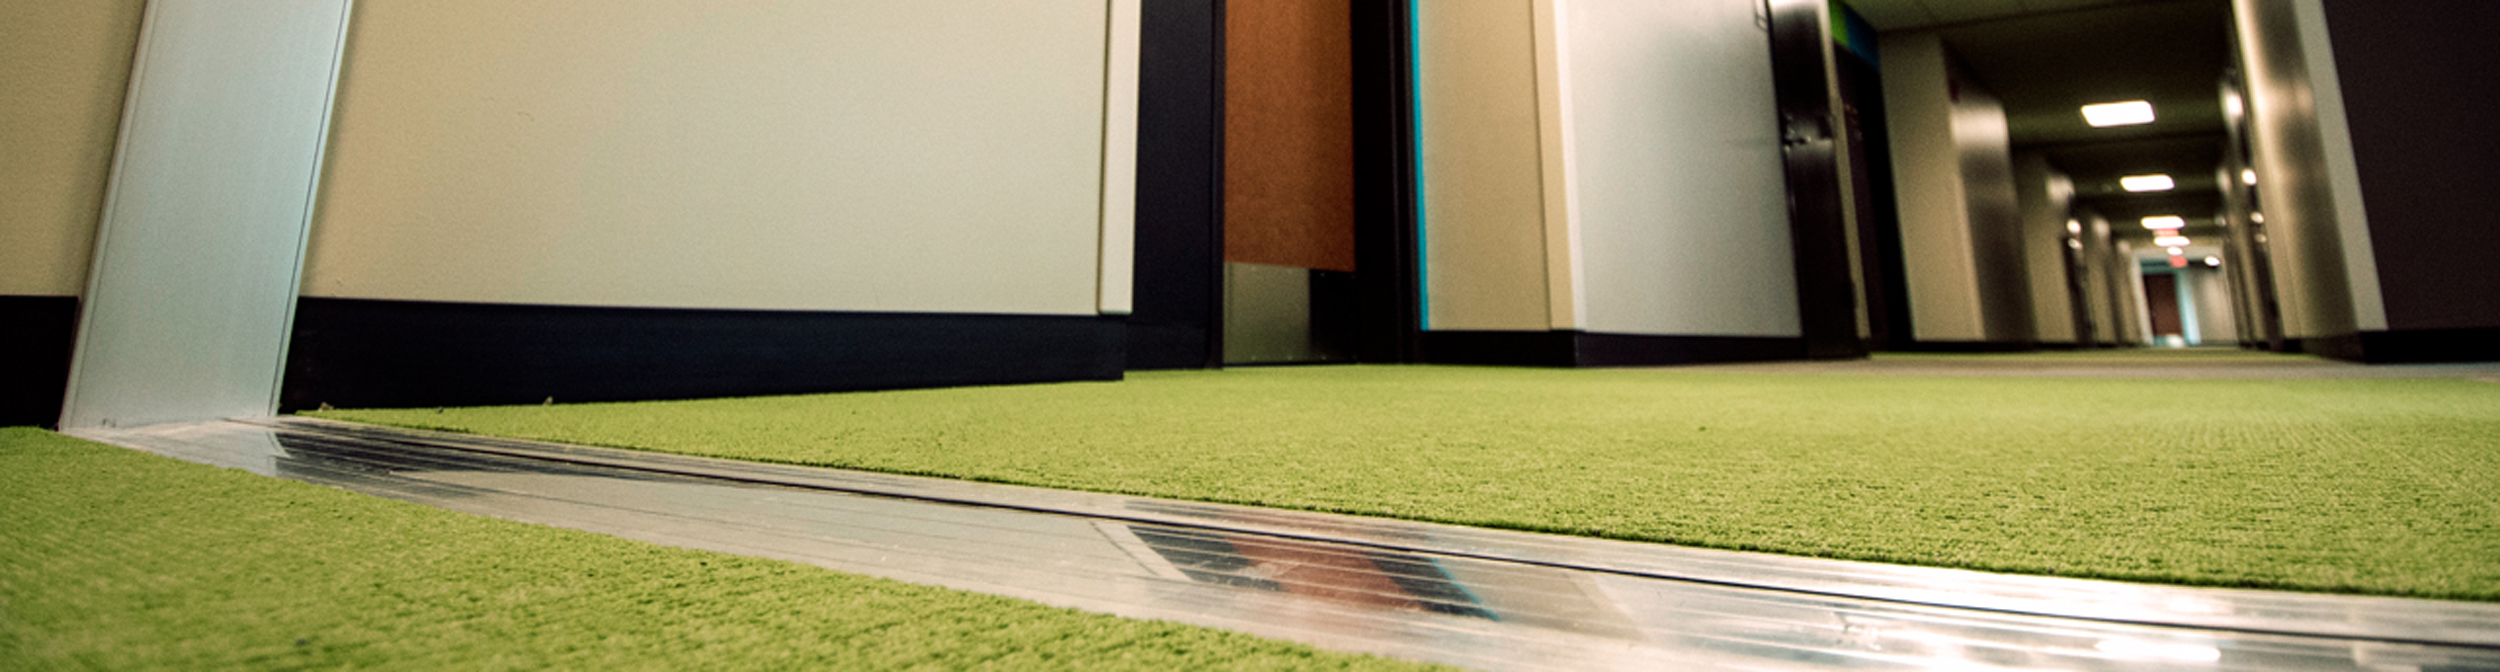 Floor expansion joint running up a wall and through green carpet